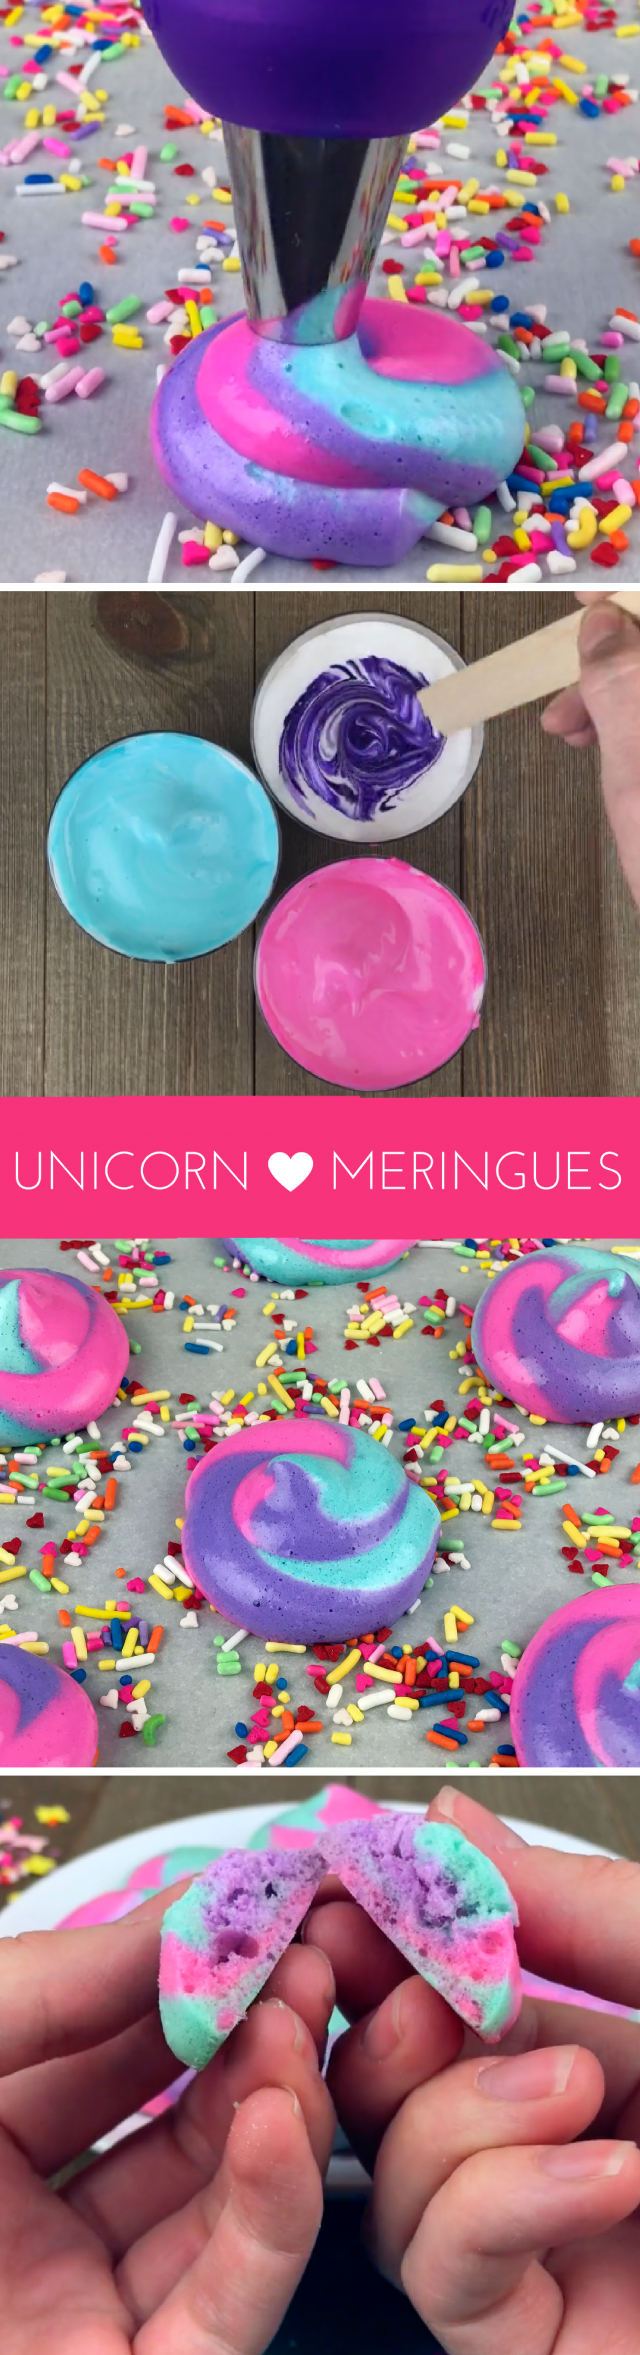 """Rainbow unicorn """"poop"""" meringues. Yup, we're doing this. Soft in the middle and crispy on the outside, these meringues are fun cookie-like snacks that are perfect for your next unicorn or rainbow-themed party. Or just because they're a ton of fun to make and eat."""